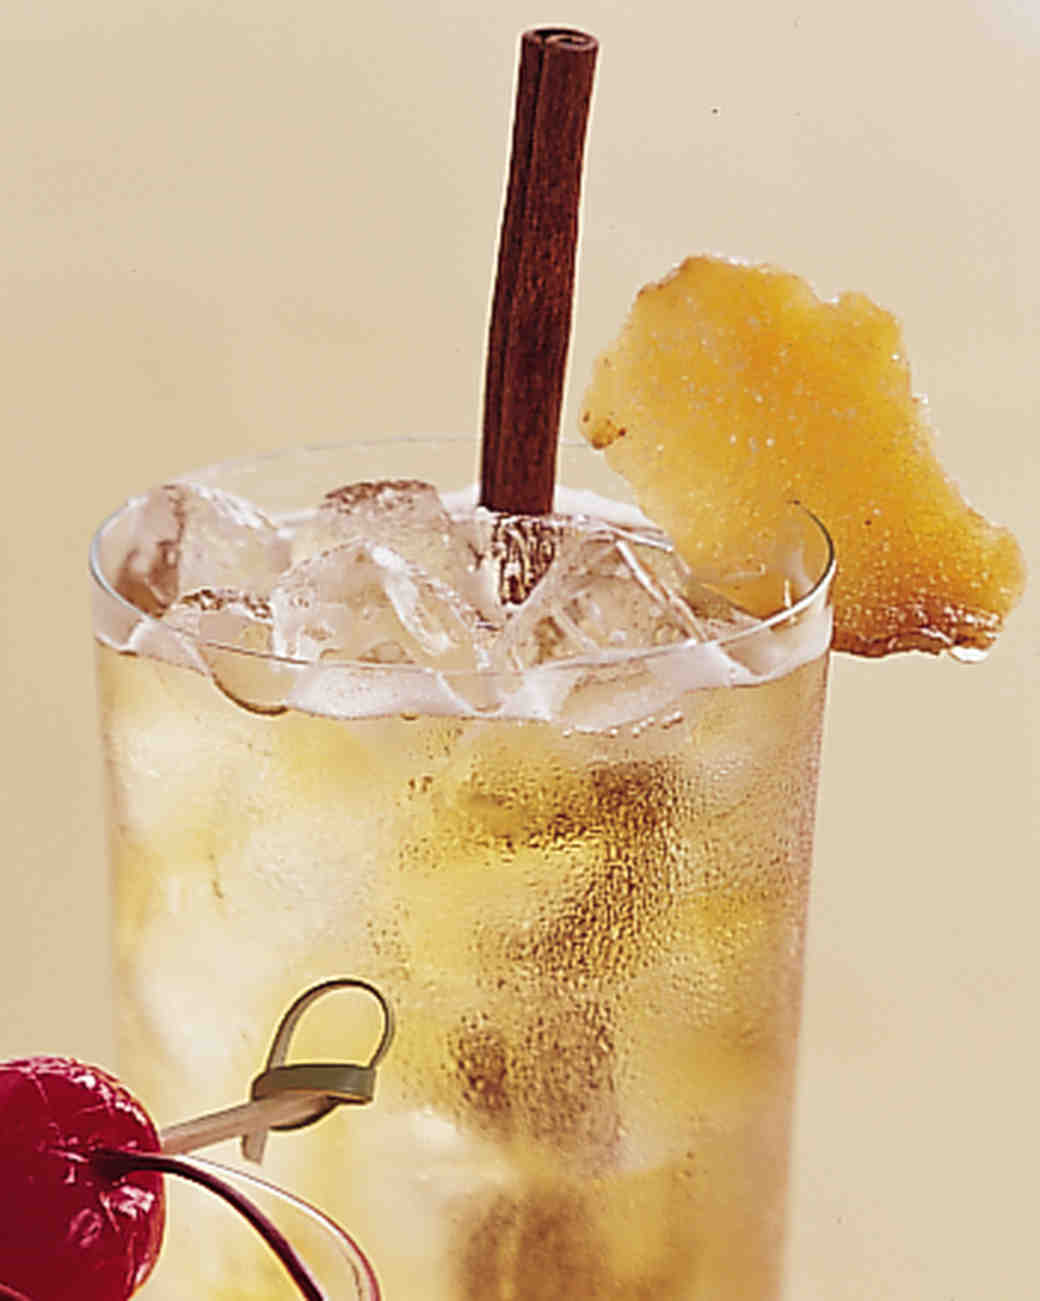 wedding-mocktail-recipes-nonalcoholic-drinks-apple-ginger-sparklers-0915.jpg